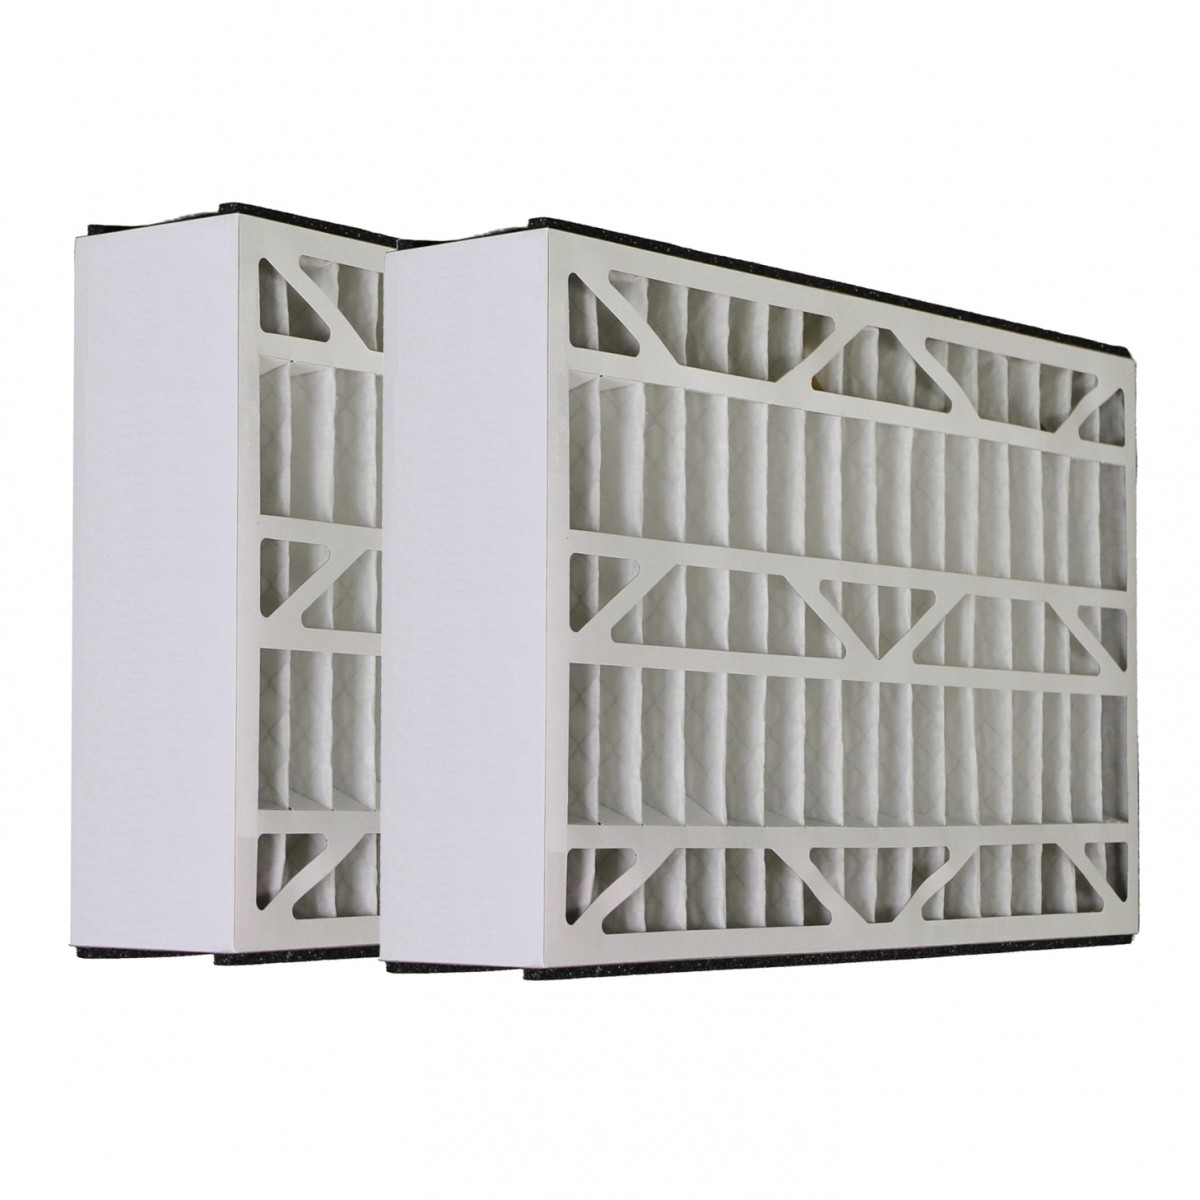 Skuttle #000-0448-002 - 20x25x5 - MERV 8 Comparable Air Filter - 2PK